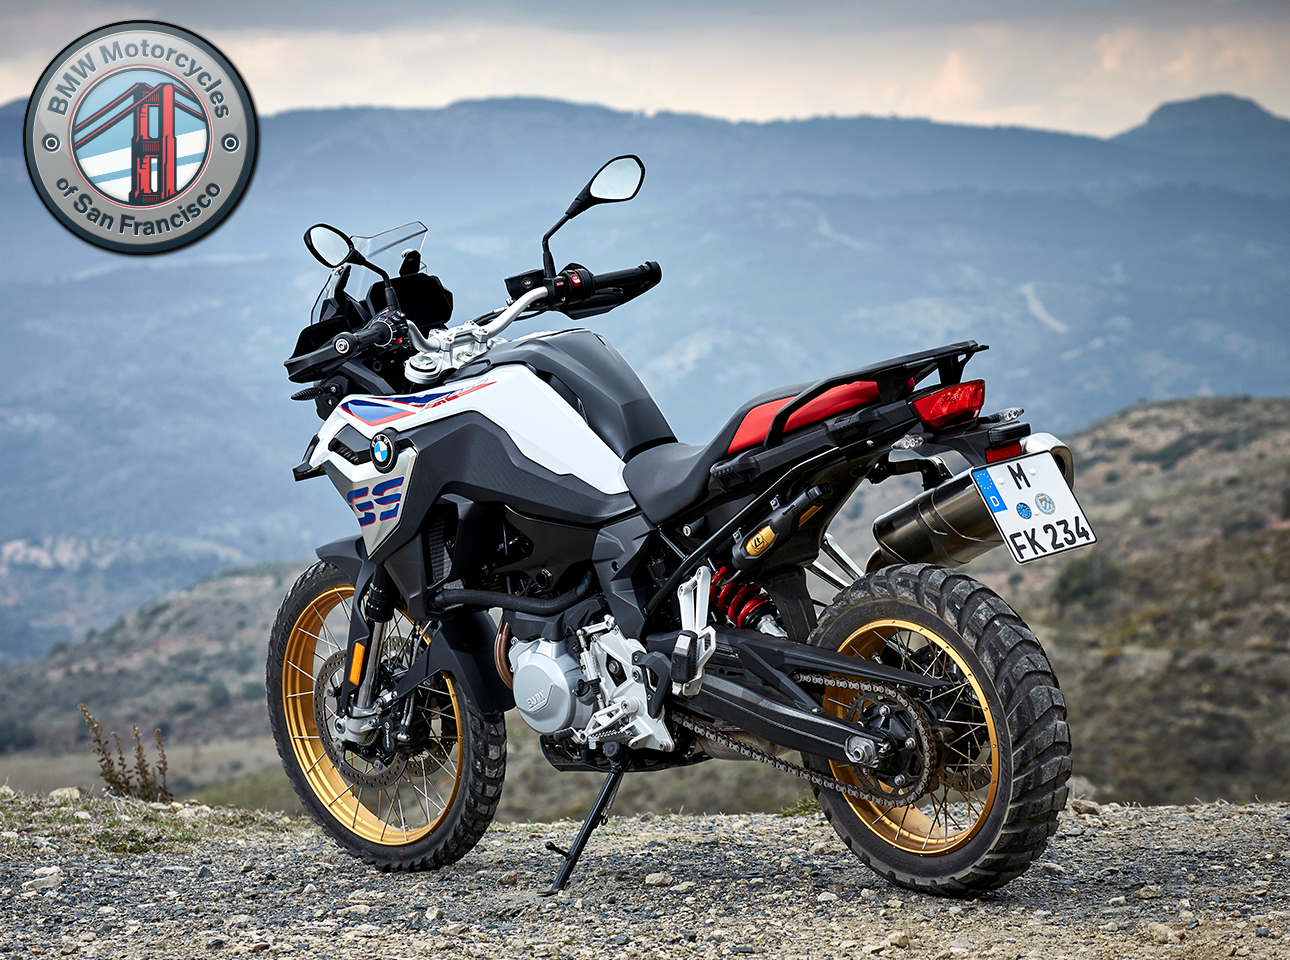 75 Concept of Bmw F850Gs Adventure 2019 Engine Research New with Bmw F850Gs Adventure 2019 Engine